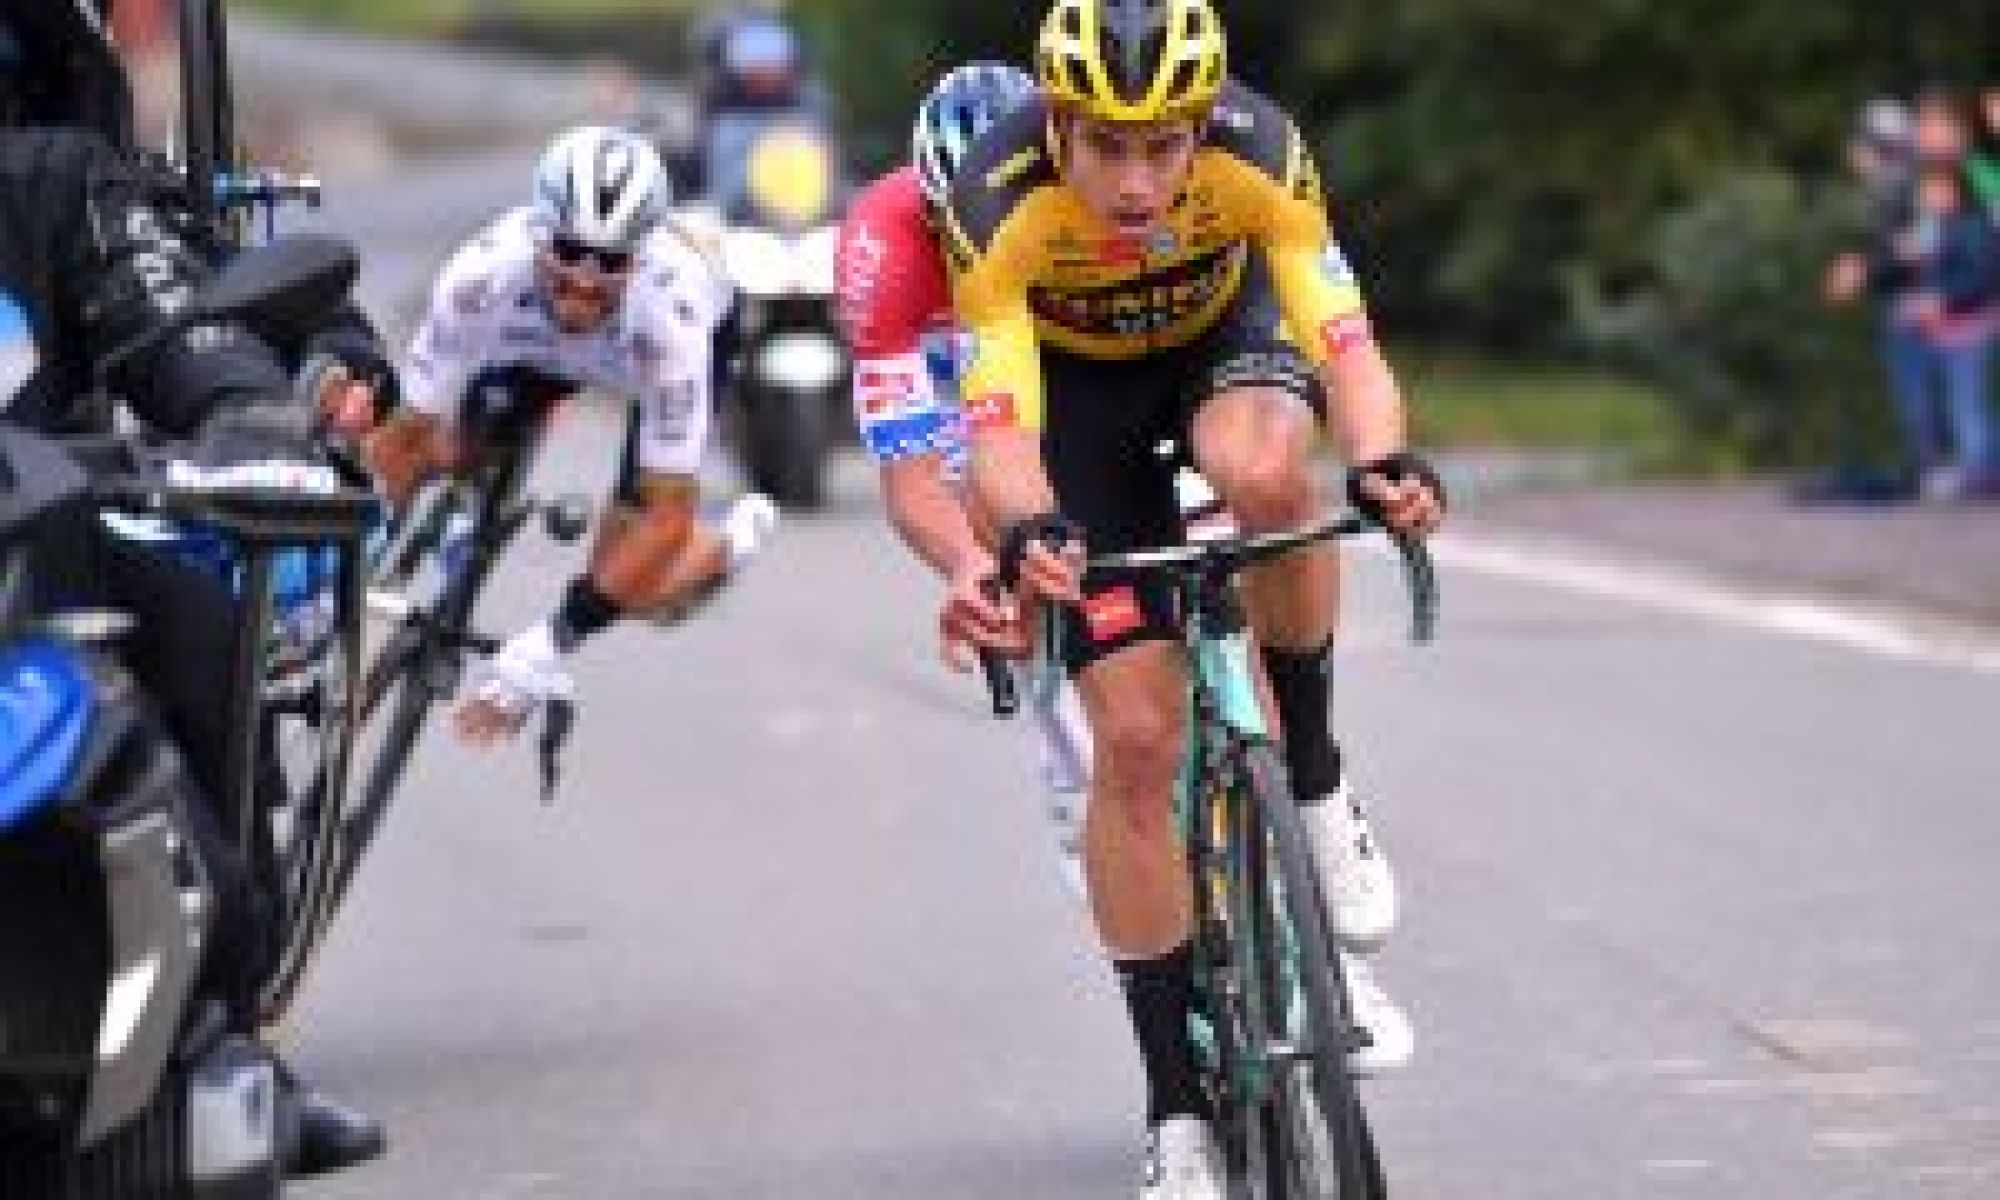 Motorbike rider responds after incident that took Julian Alaphilippe out of Tour of Flanders 2020